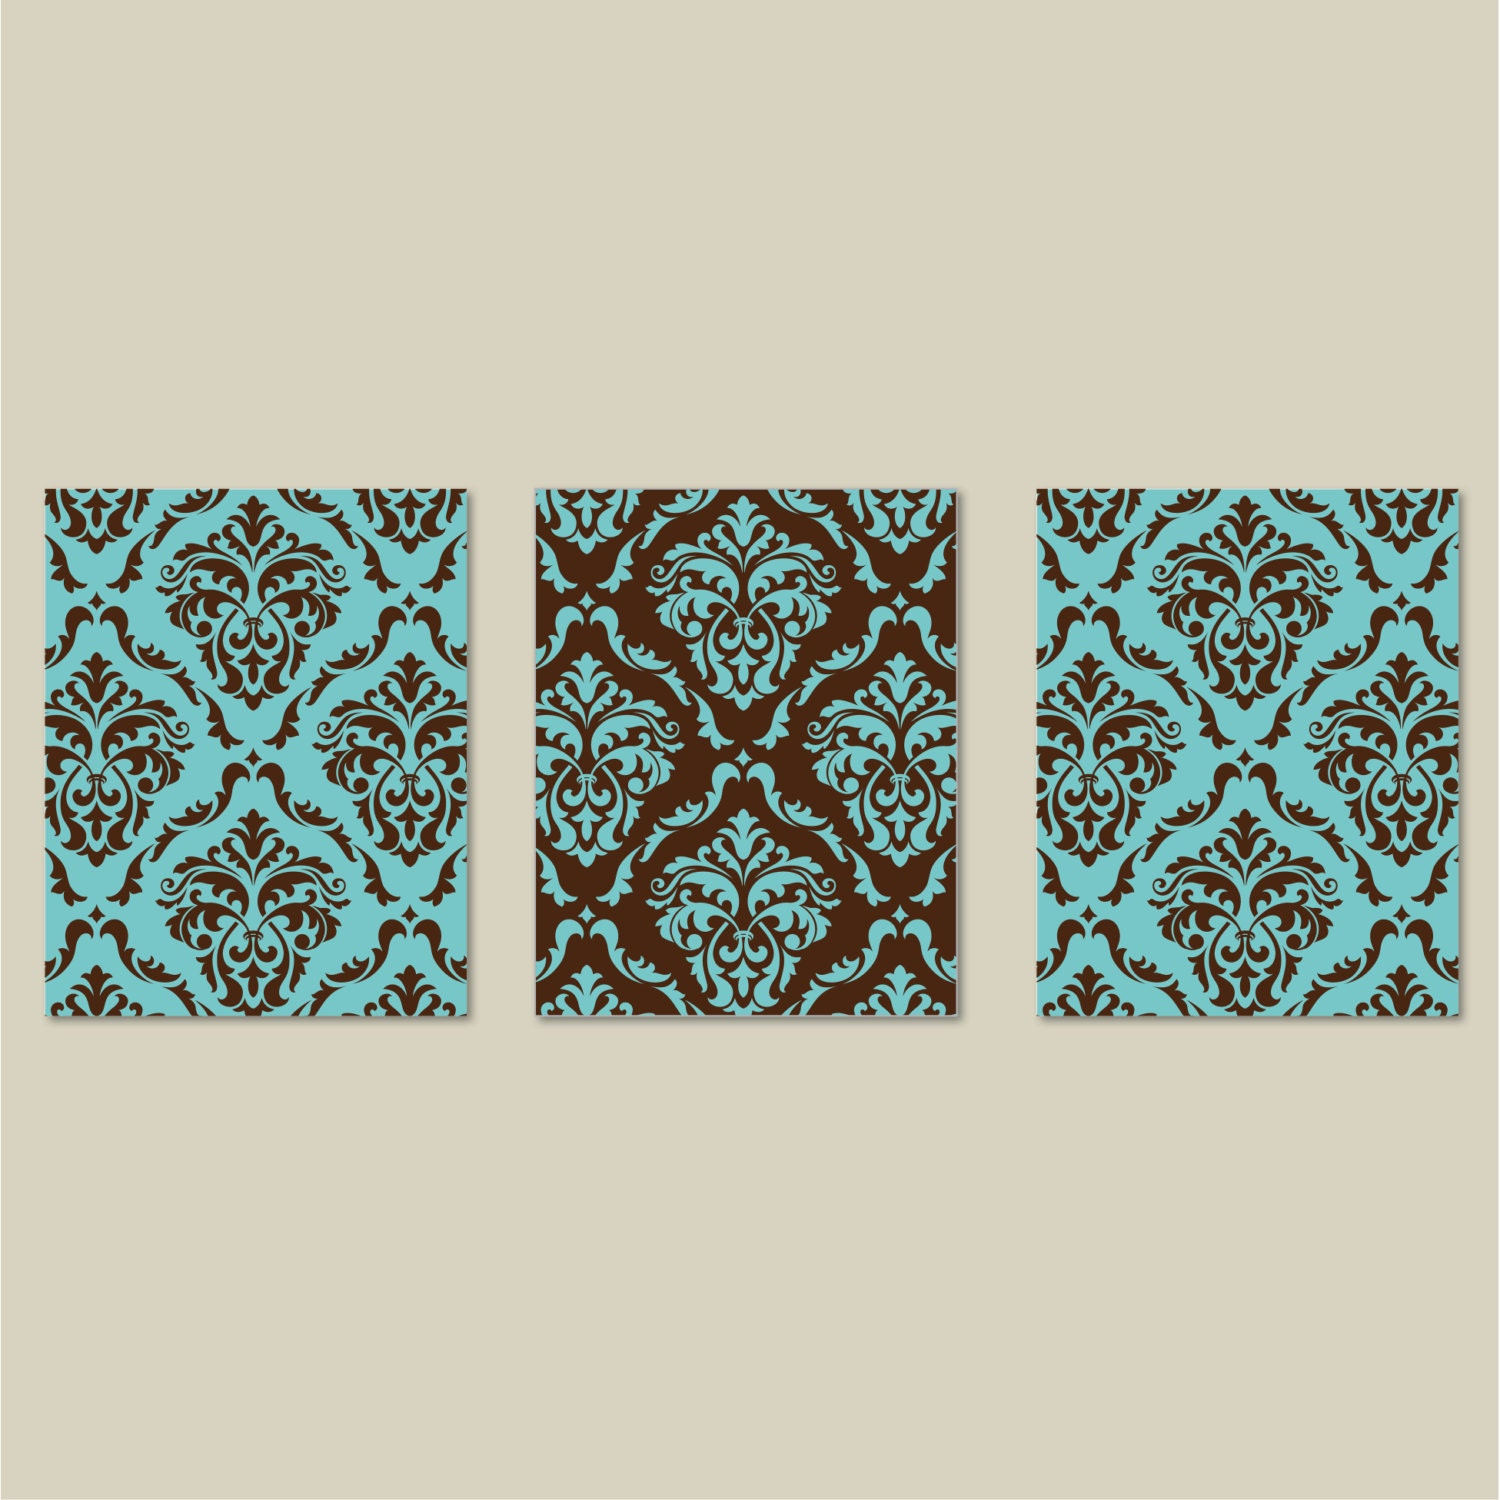 Teal and brown wall